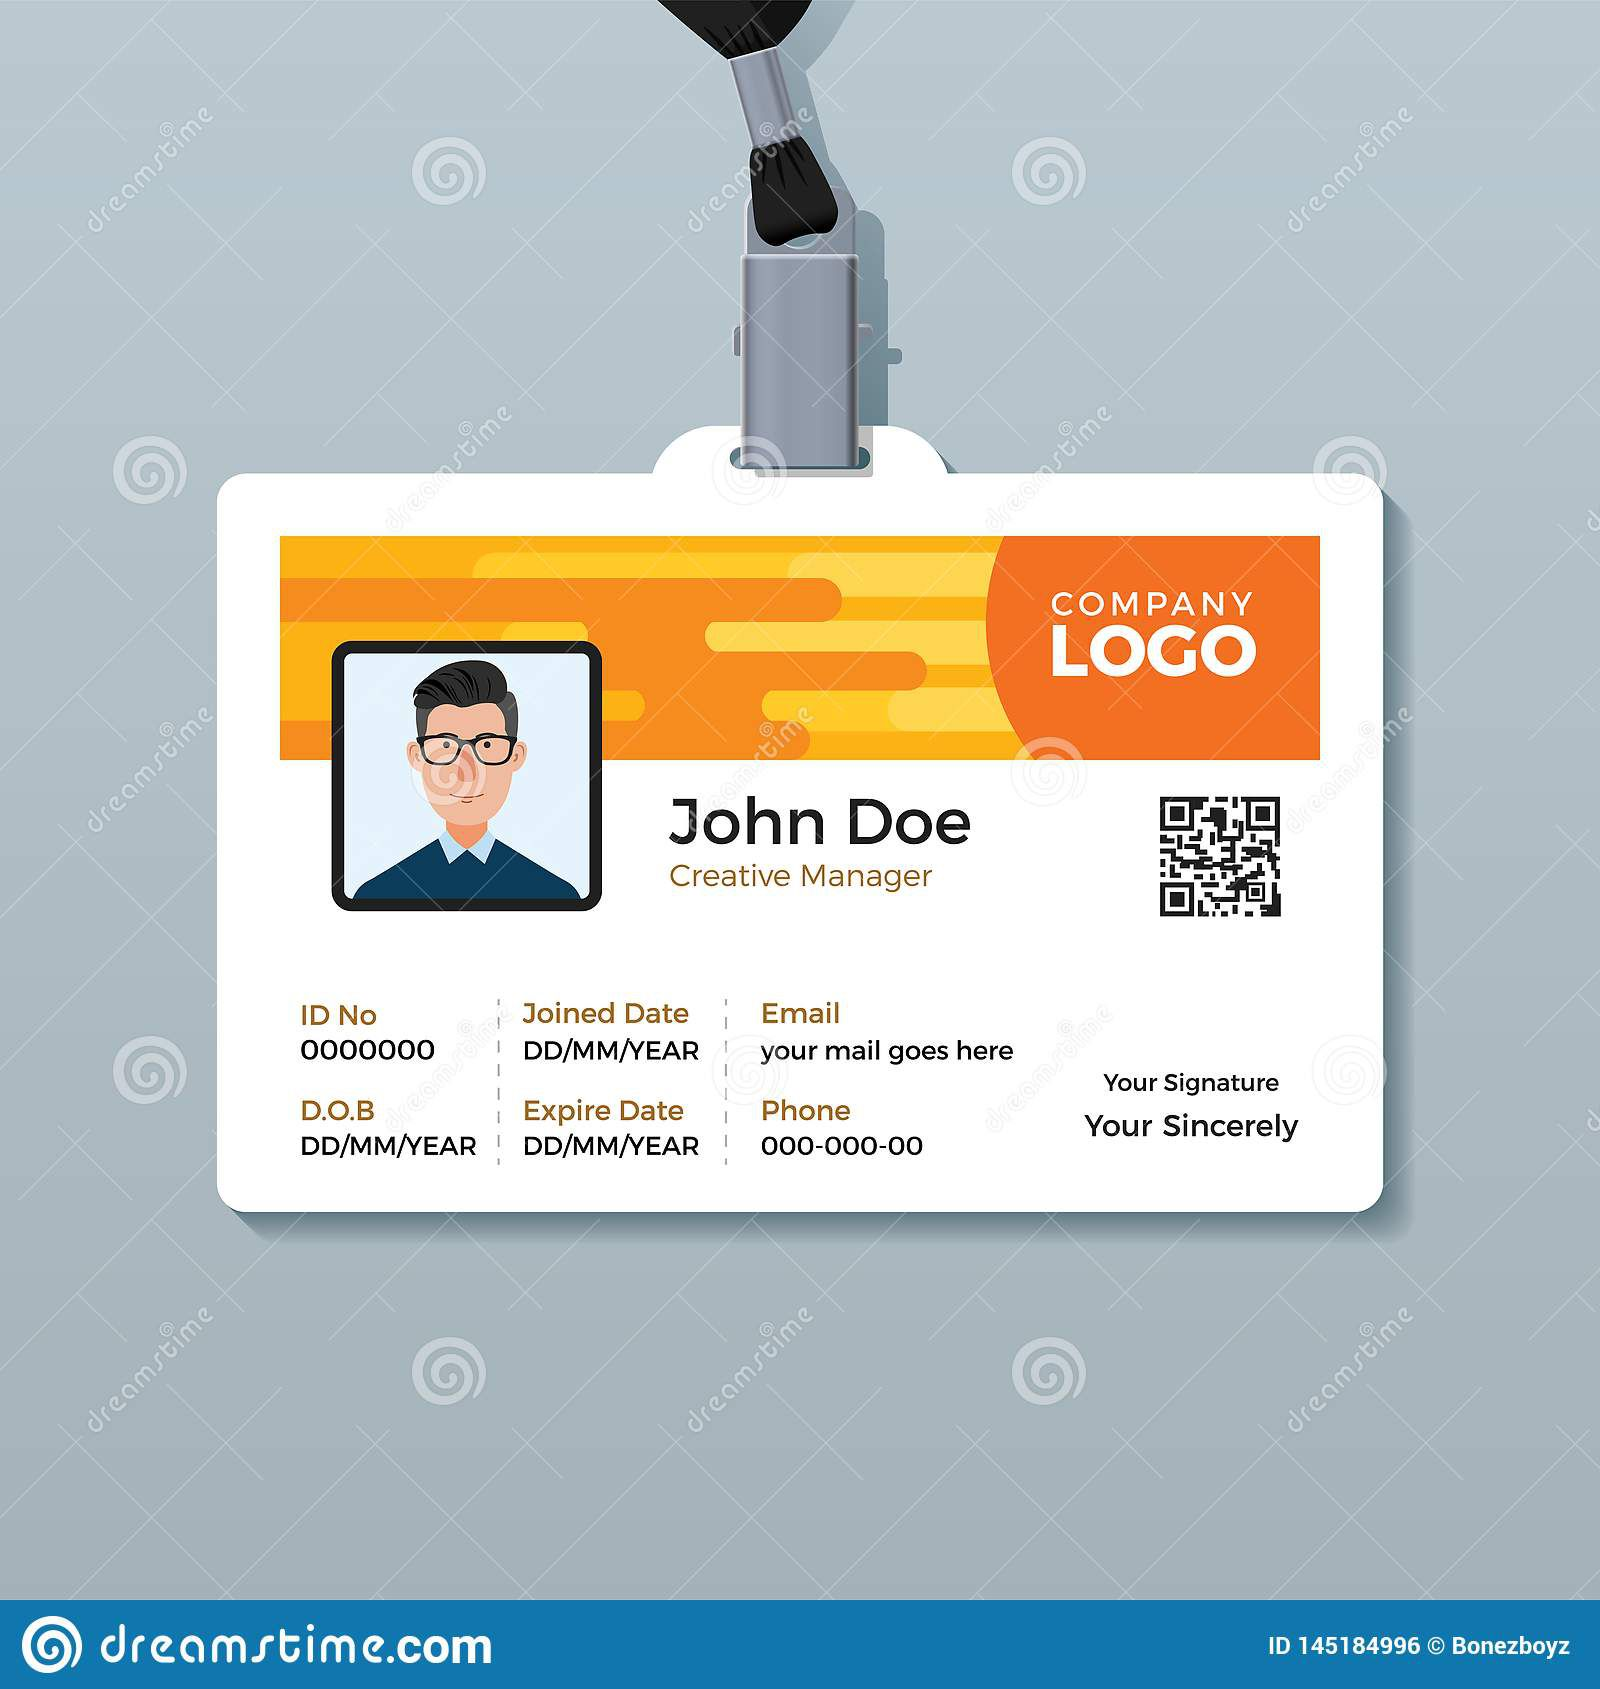 007 Simple Employee Id Card Template High Definition  Free Download Psd WordFull